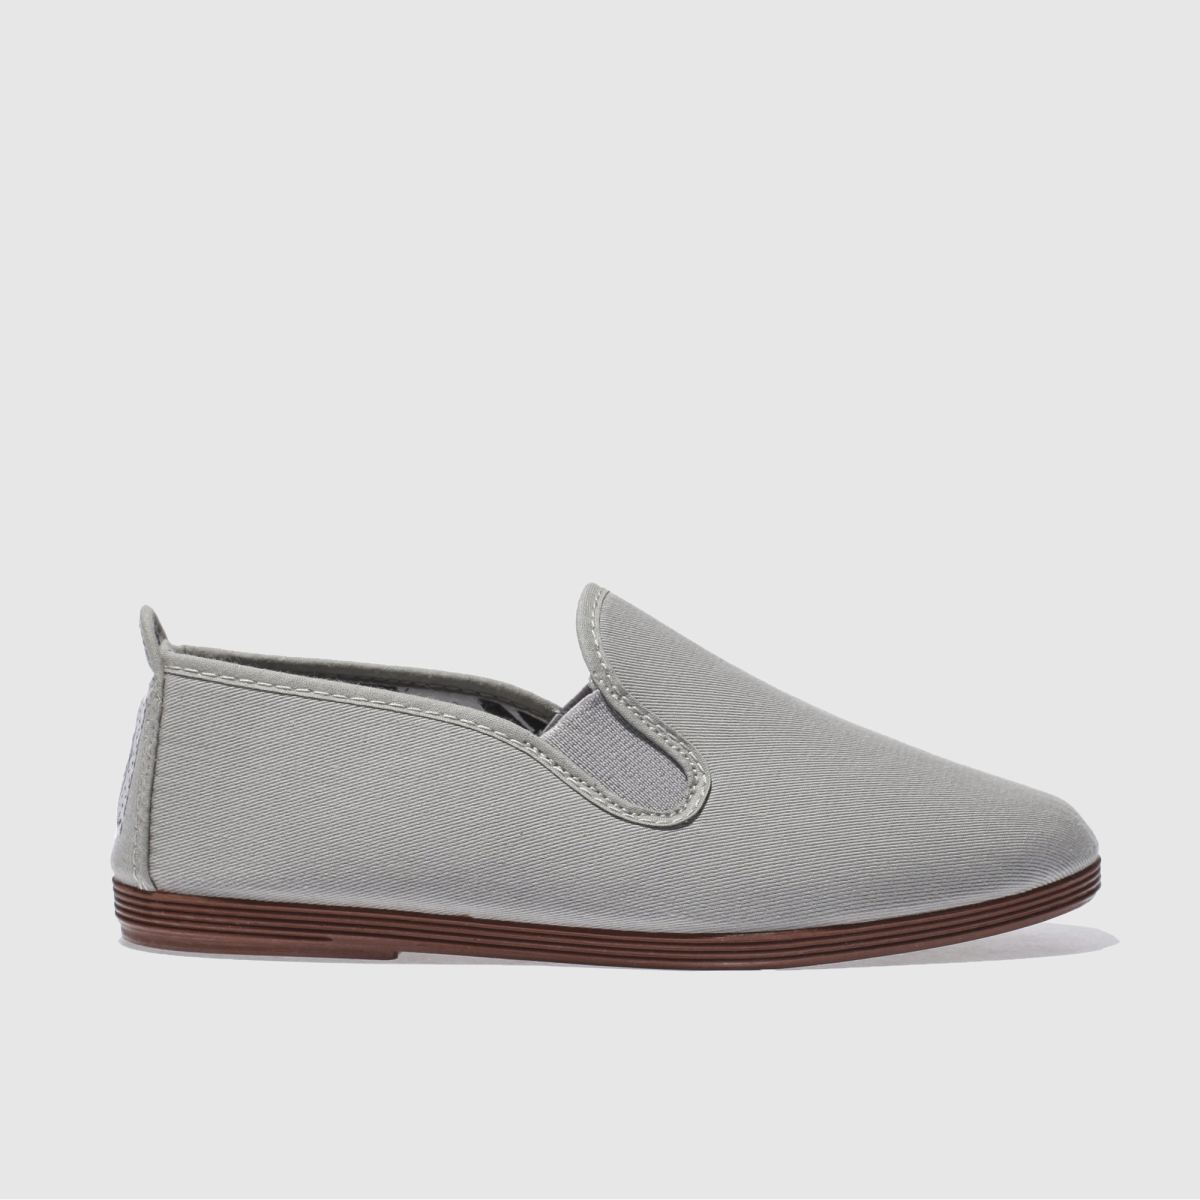 Flossy Flossy Light Grey Plimsoll Flat Shoes